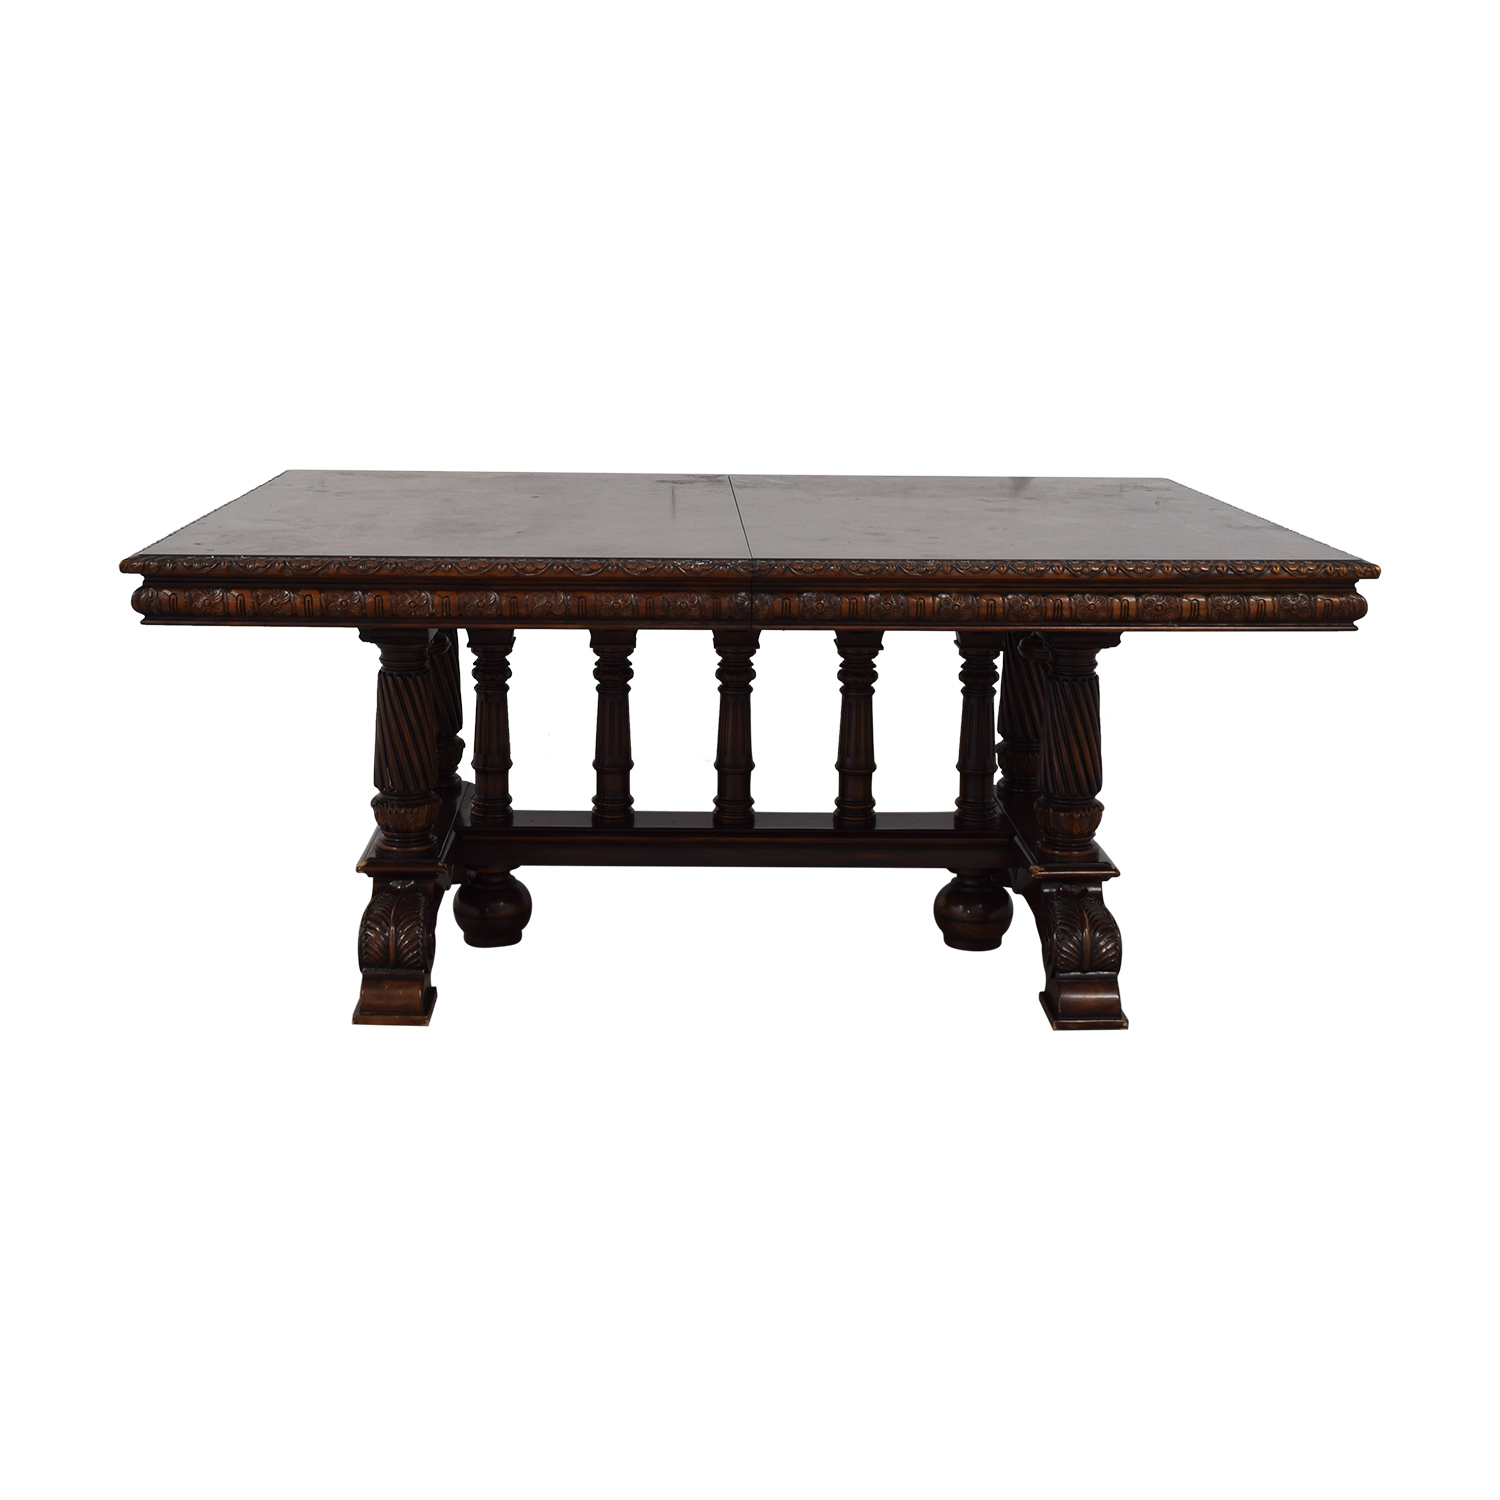 ABC Carpet & Home ABC Carpet & Home Extendable Dining Table Brown